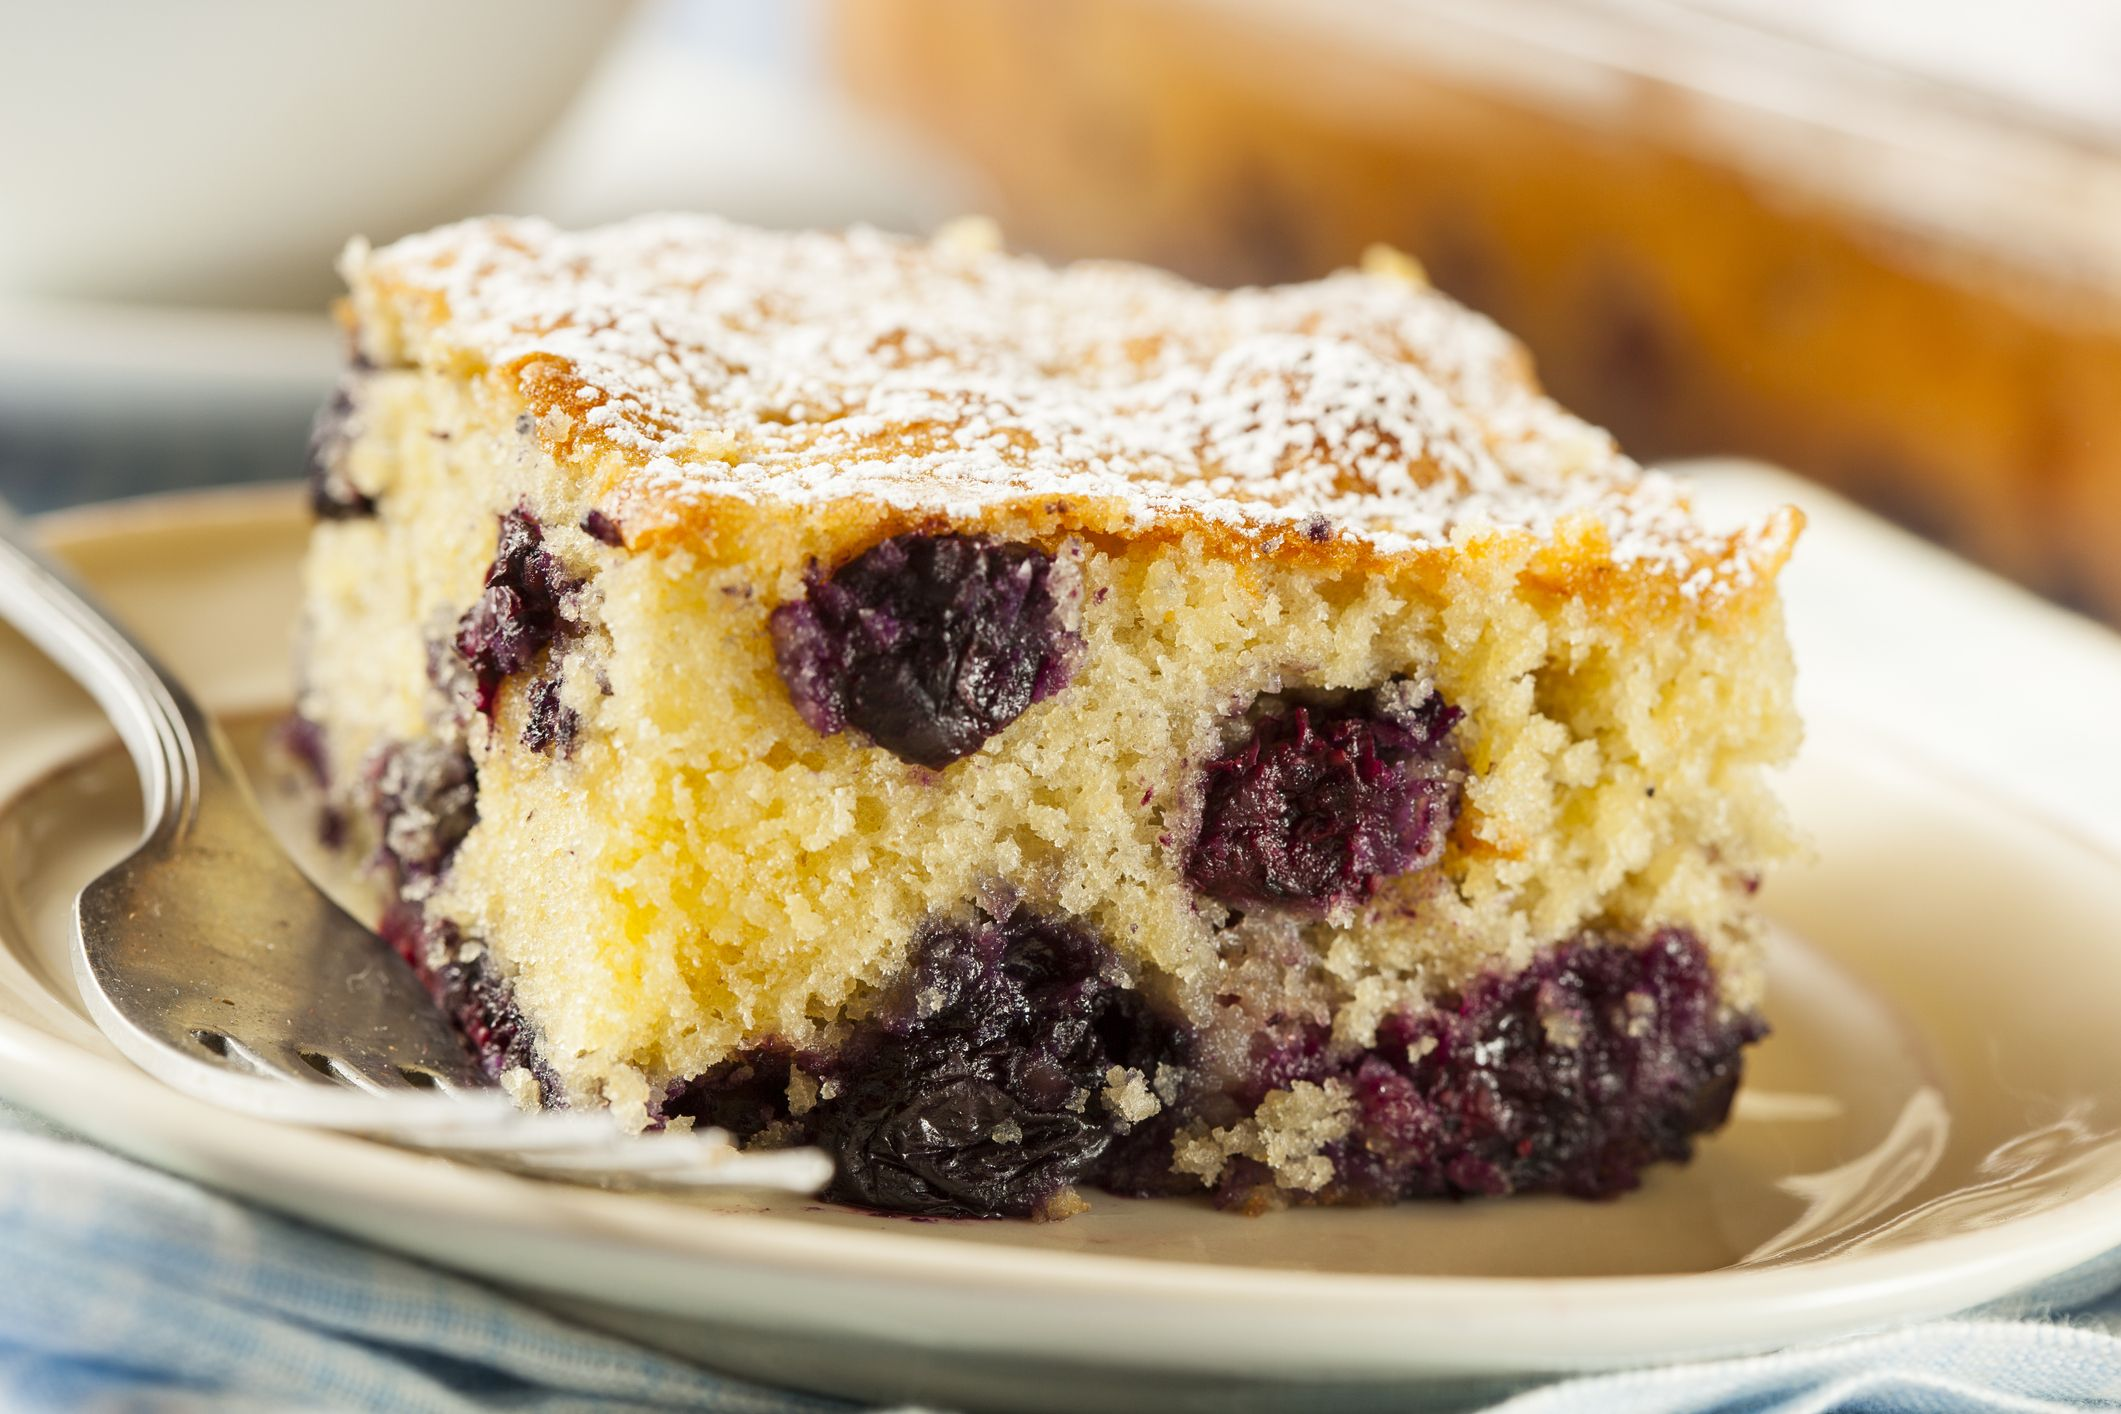 Blueberry lemon coffee cake recipe with images